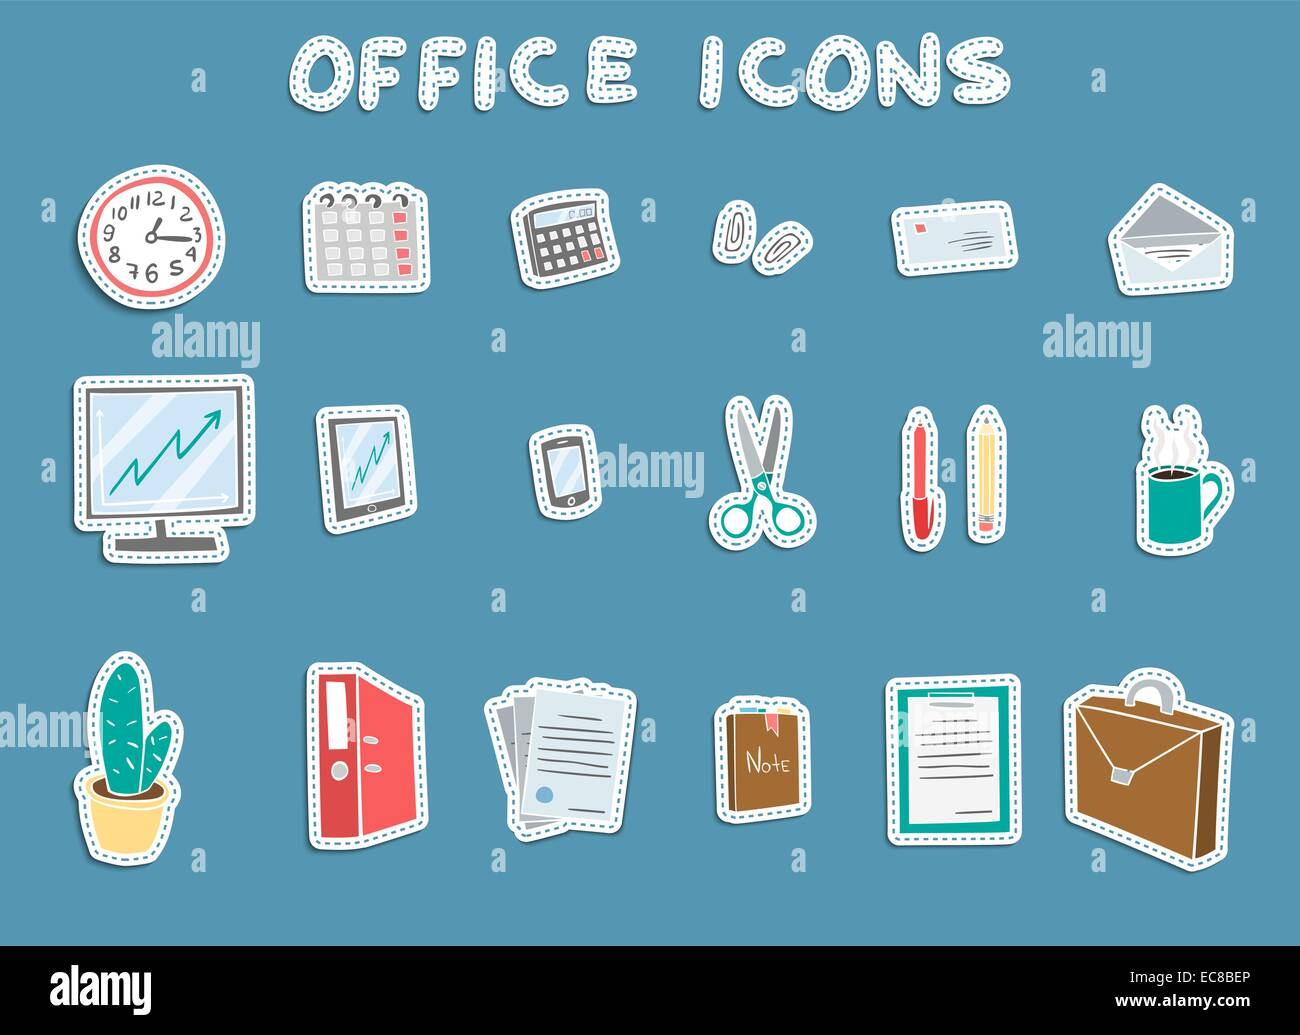 how to start office supplies business